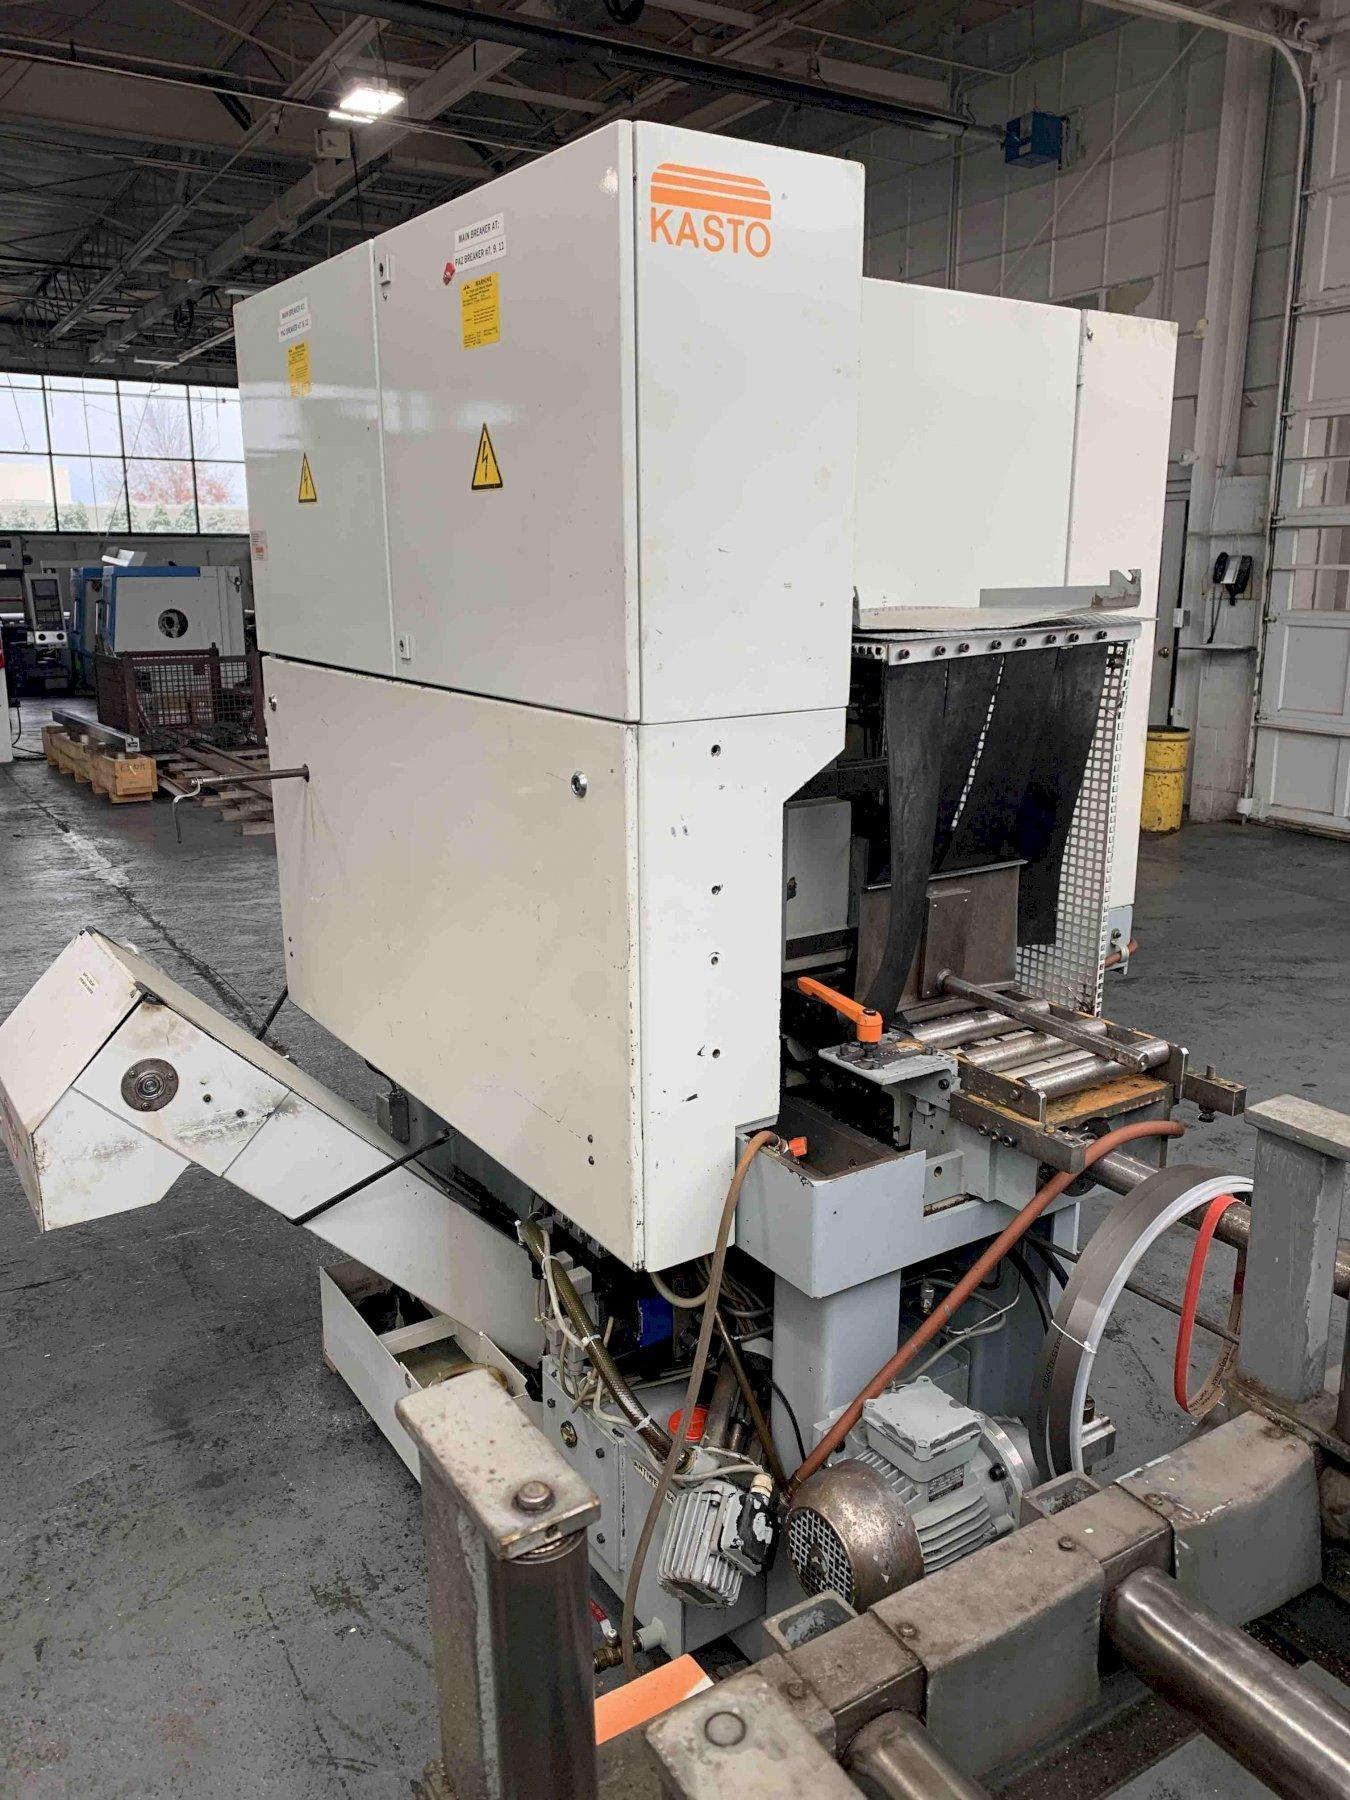 "USED KASTO FULLY AUTOMATIC BANDSAW MODEL SSB260VA, 10.25"" x 10.25"", YEAR 1993, STOCK 10631"